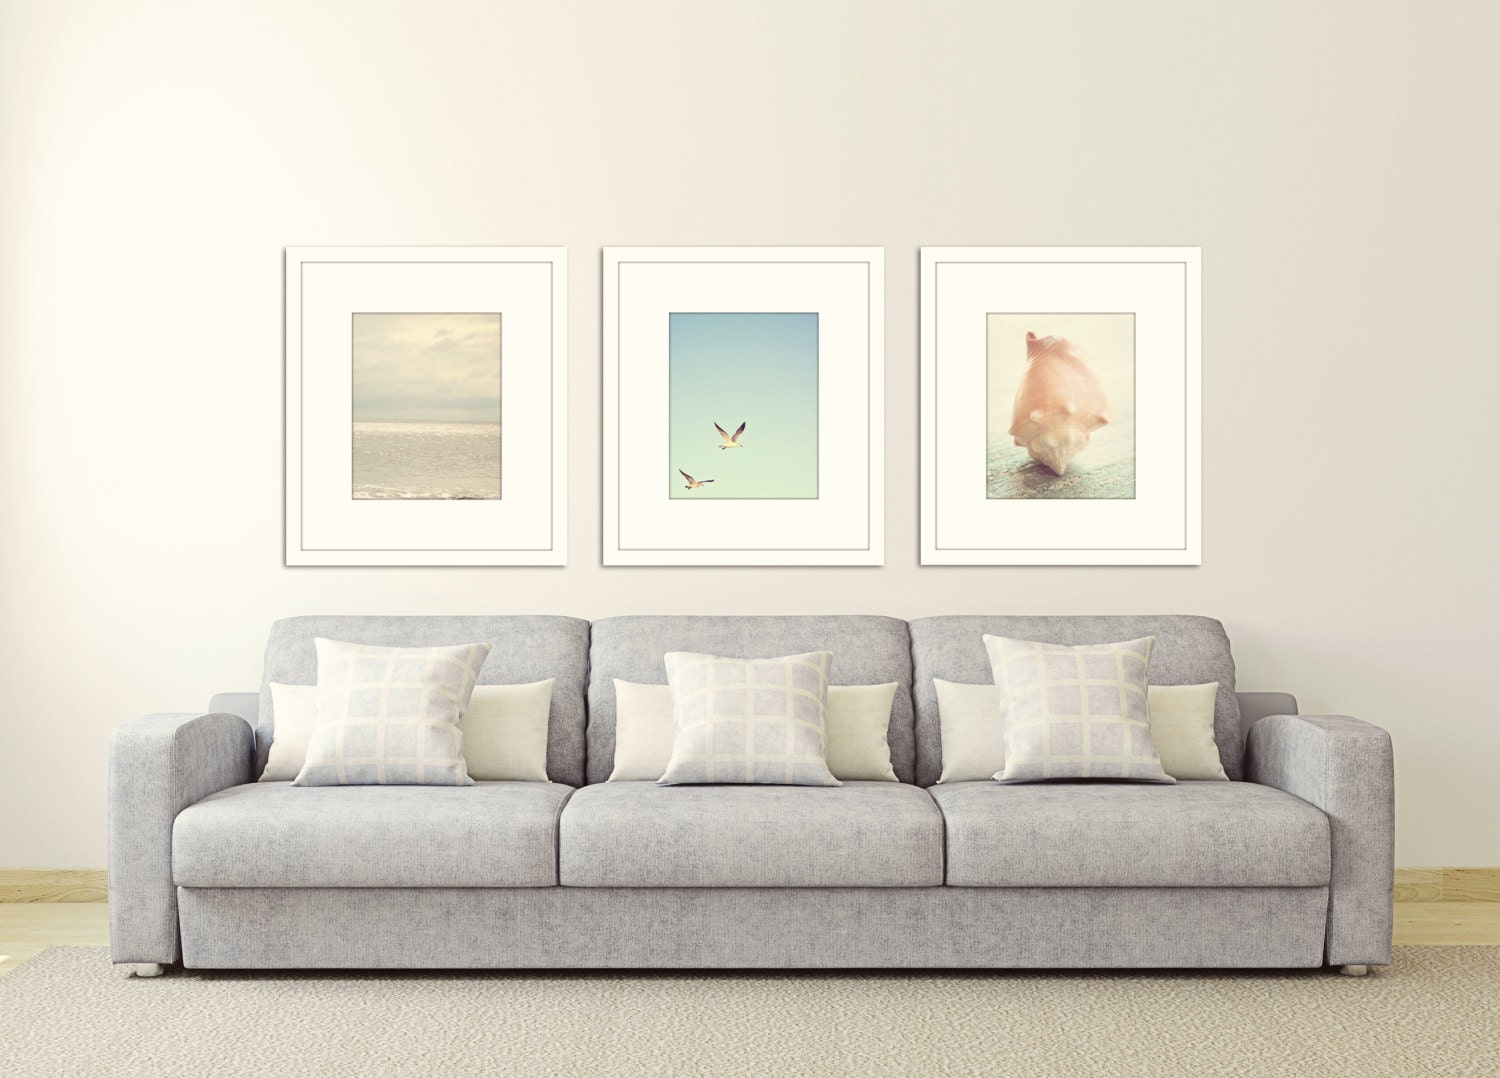 Coastal Wall Decor: Beach Prints Coastal Wall Art Ocean Decor Nautical Wall Decor